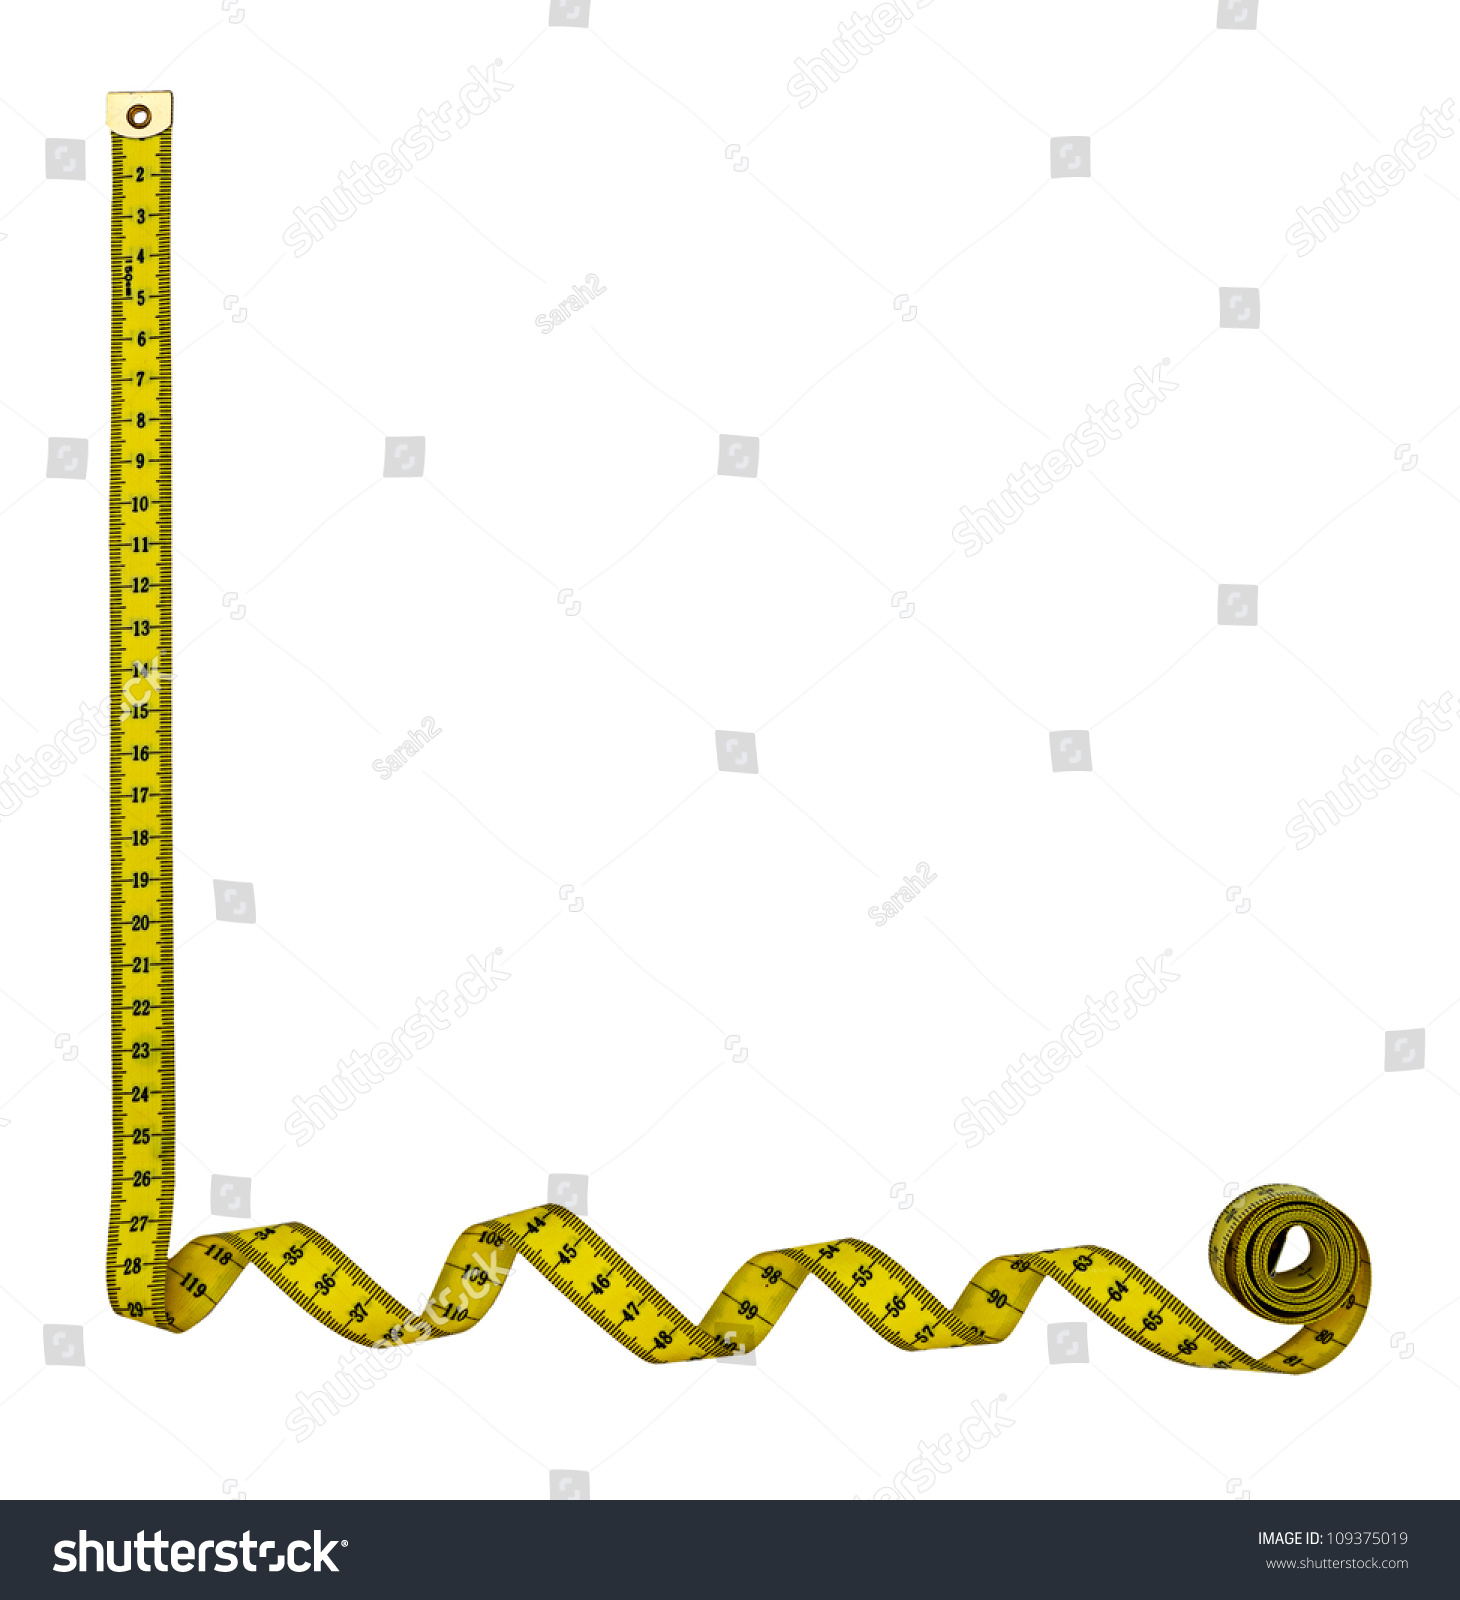 Vector of tape measure border a page border created from a rag tape - Tape Measure Border Frame Left Hand Corner Isolated Over White